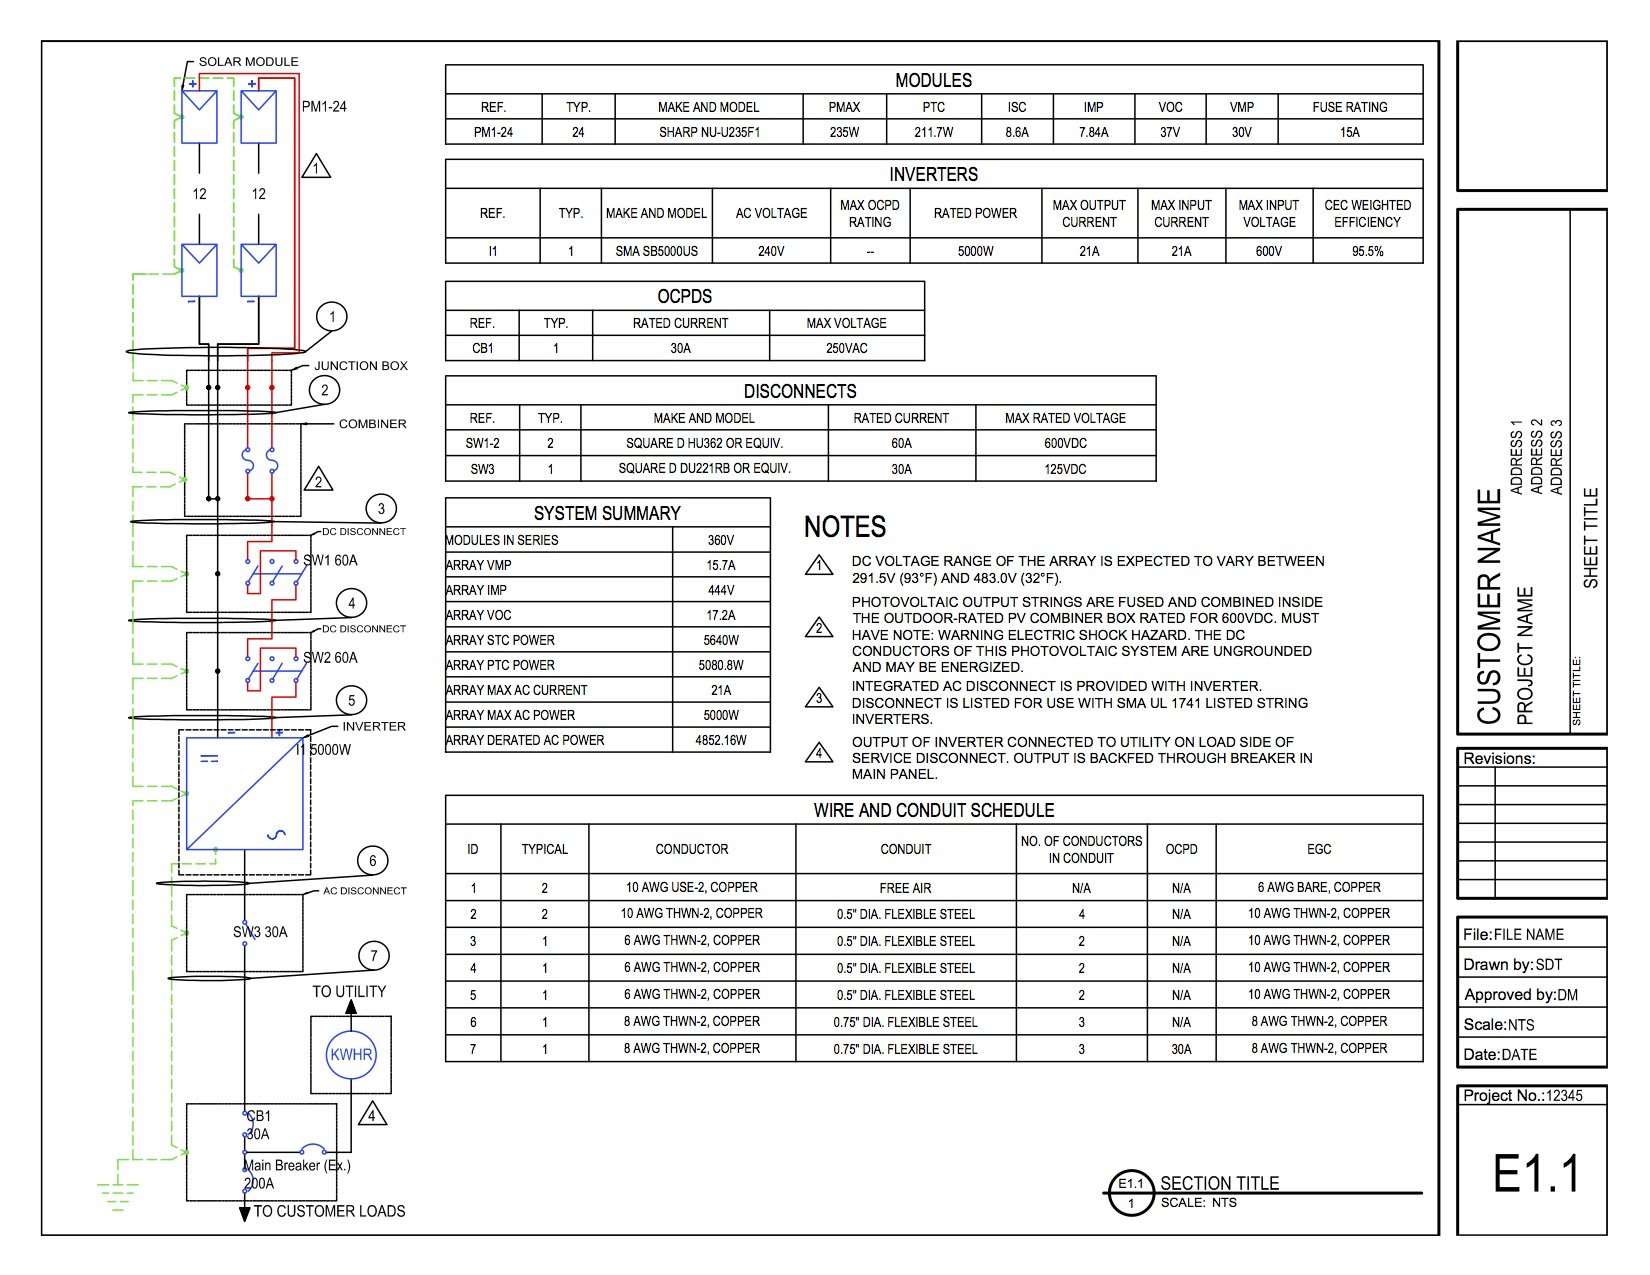 single line diagrams on demand solardesigntool earth leakage circuit breaker earth leakage circuit breaker earth leakage circuit breaker earth leakage circuit breaker